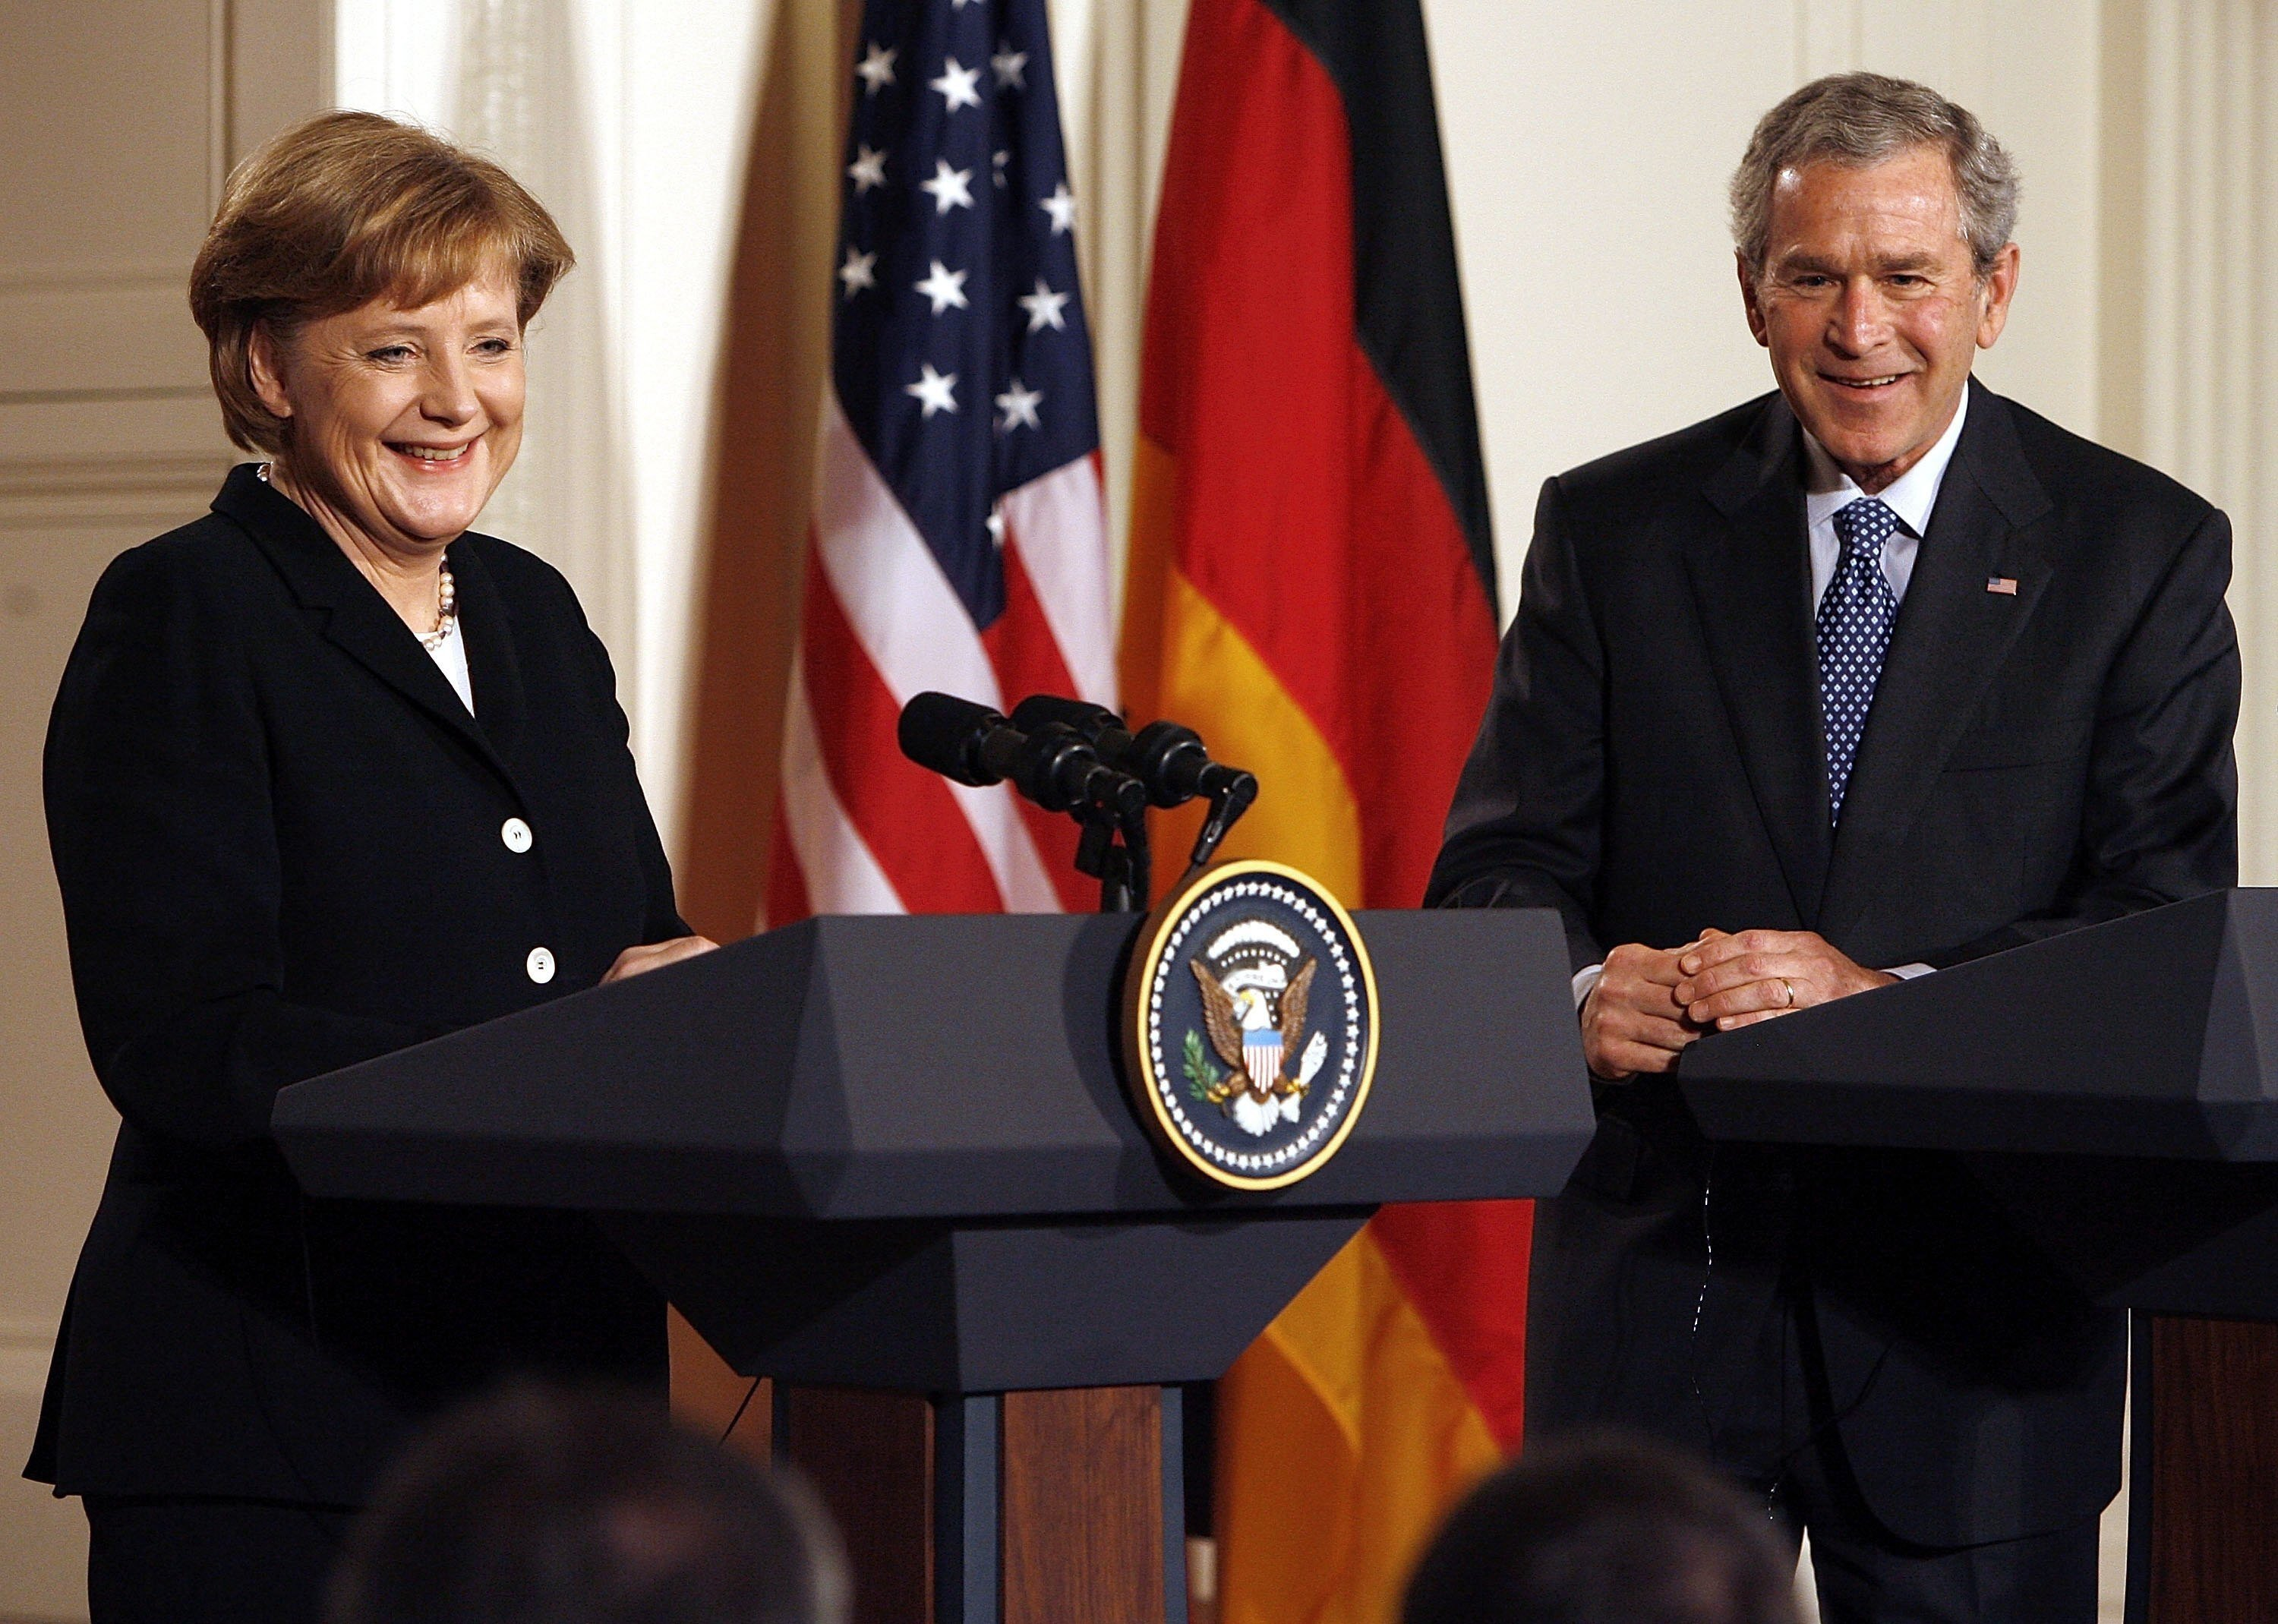 German Chancellor Angela Merkel (L) and then U.S. President George W. Bush hold a joint press conference in the East Room of the White House in Washington, D.C., U.S., Jan. 13, 2006. (Getty Images Photo)